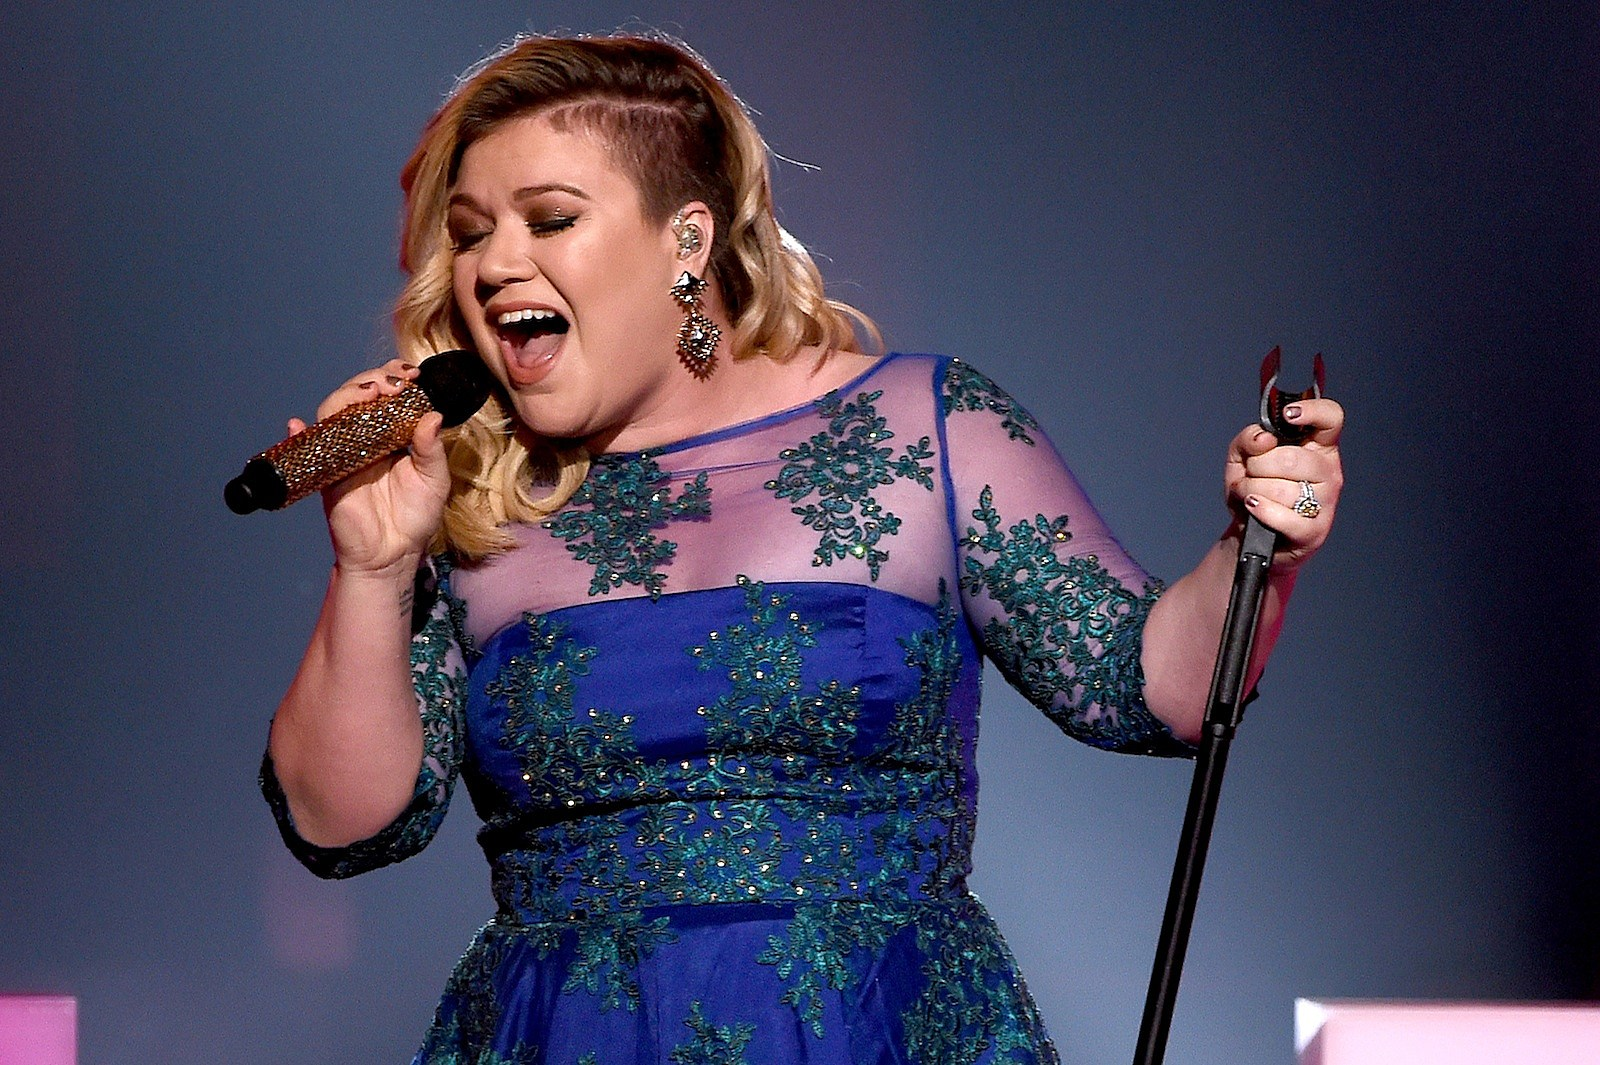 Kelly Clarkson to Perform at 2016 National Christmas Tree Lighting